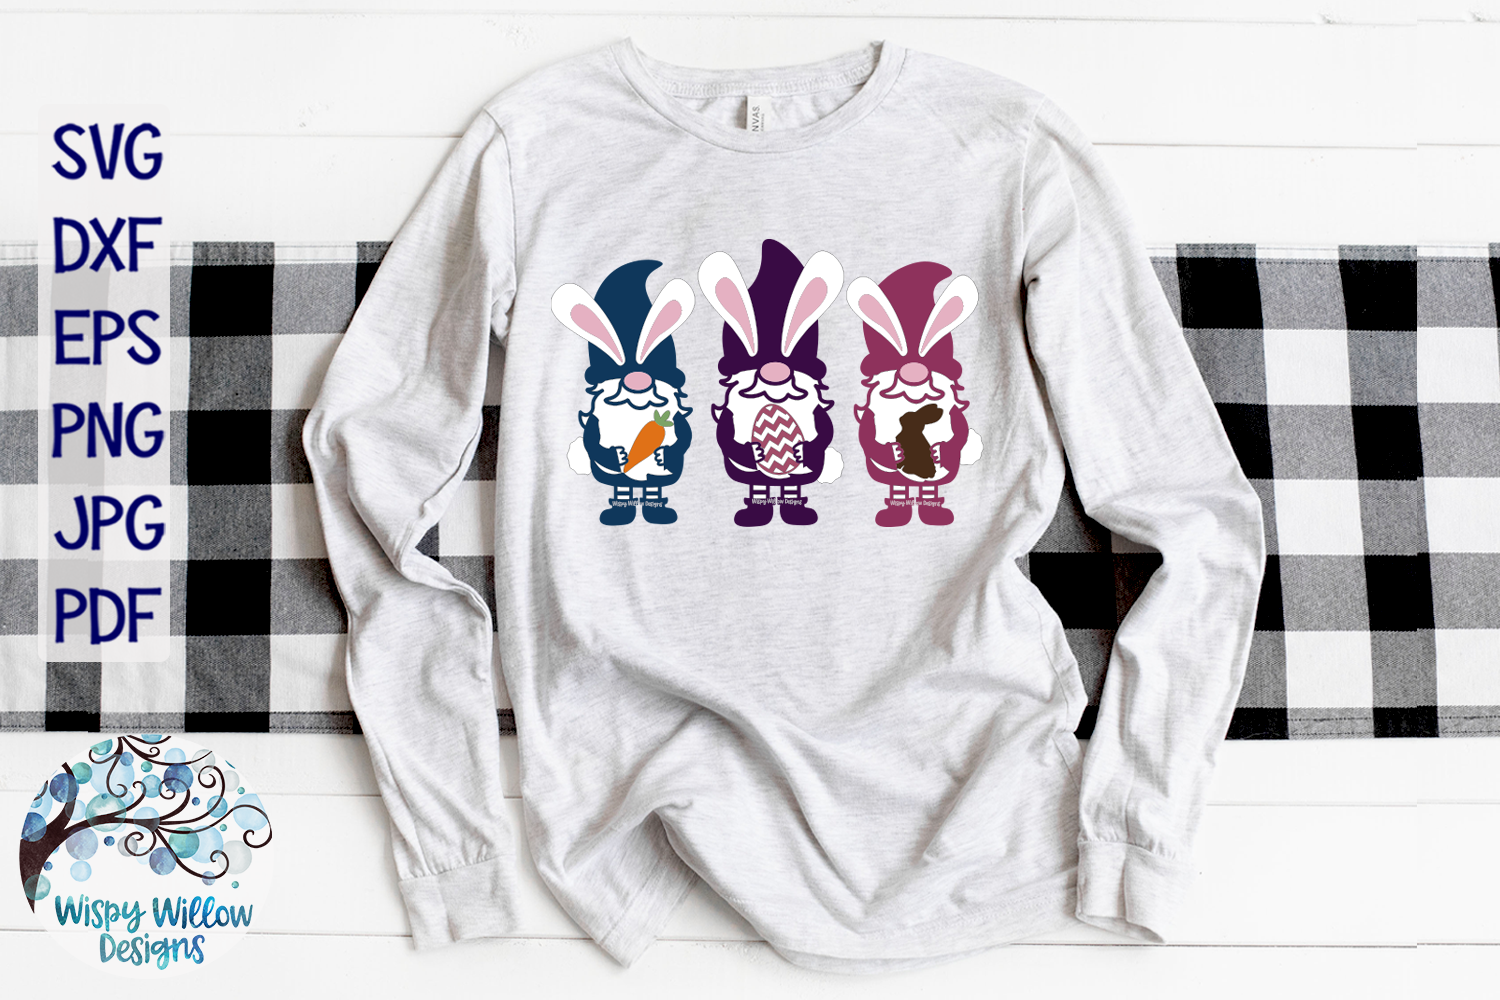 Easter Gnomes SVG | Easter Bunny Gnome SVG Cut File example image 2